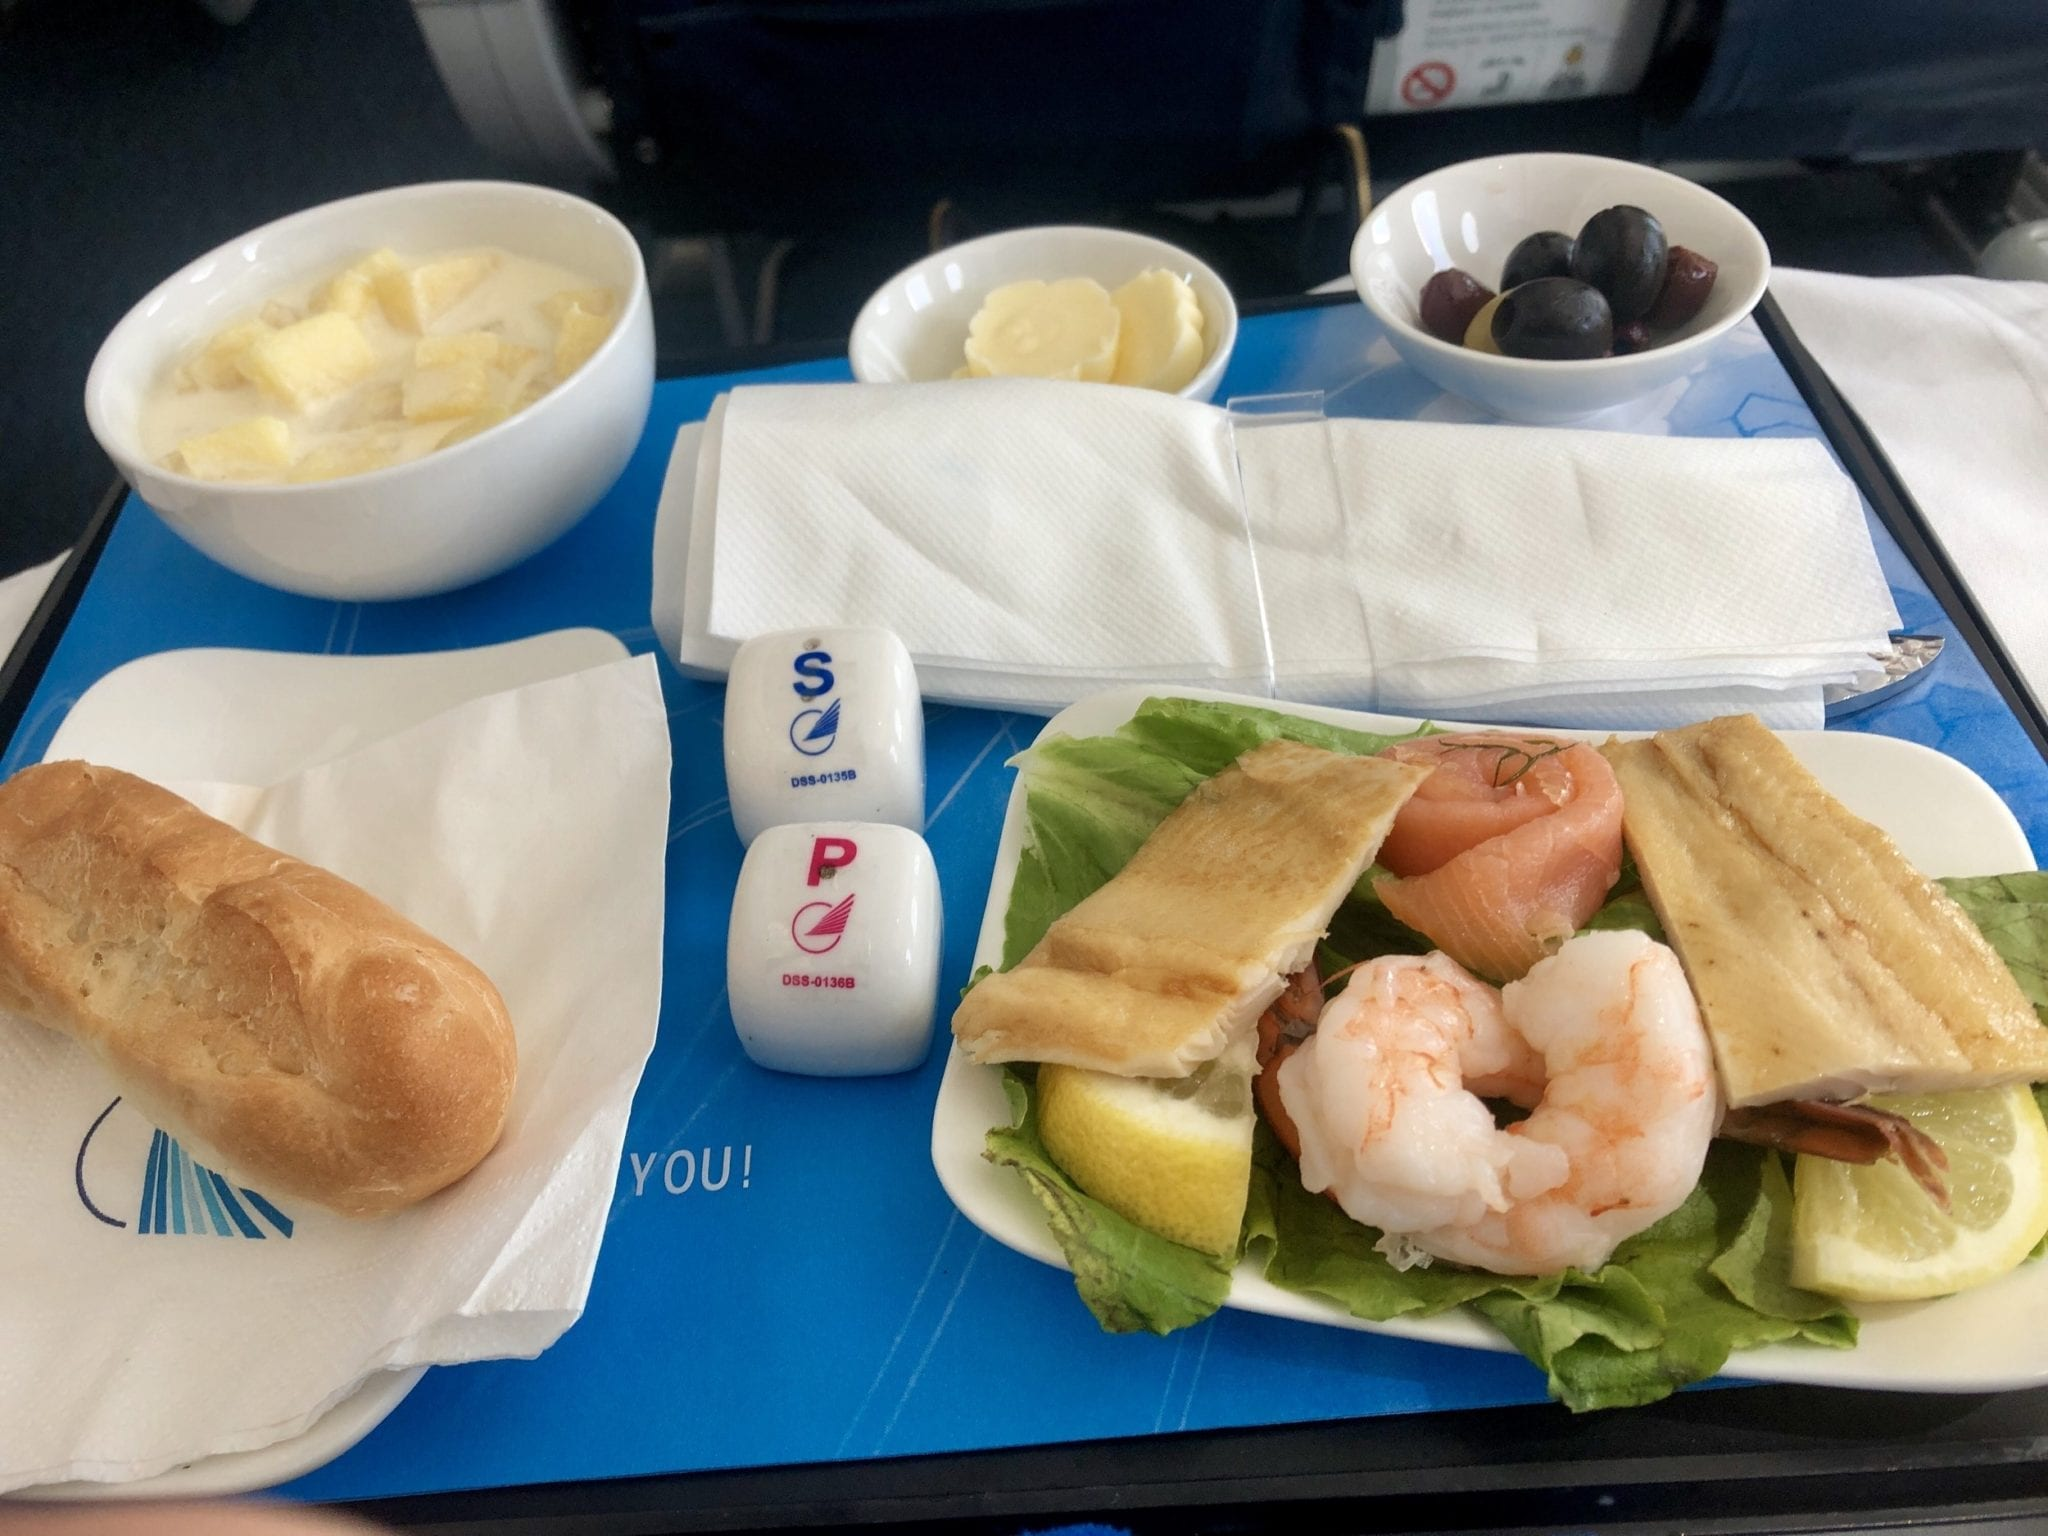 The appetizer on Azerbaijan Airlines: shrimp and cured seafood, pineapple in milk (weird), bread, berries.